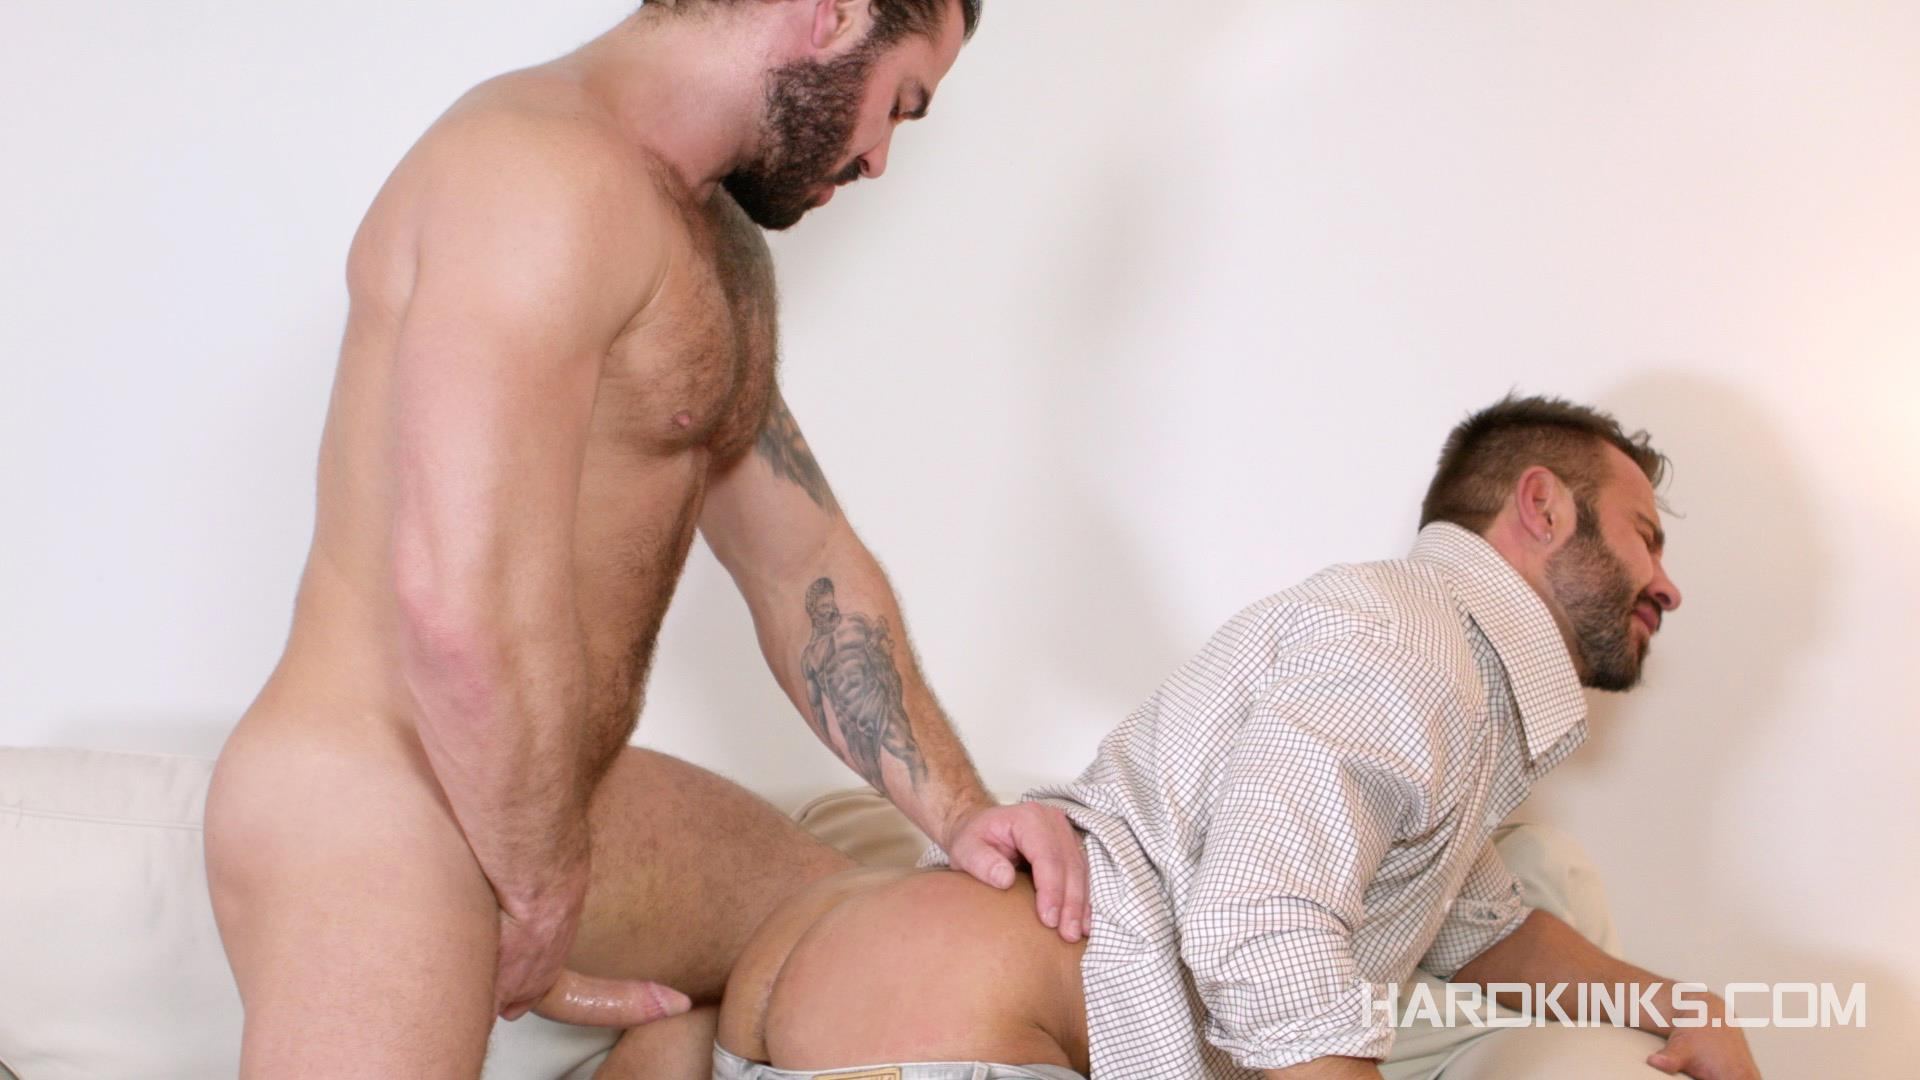 Alpha Sex Porn jessy ares best rated gay porn | free hot nude porn pic gallery